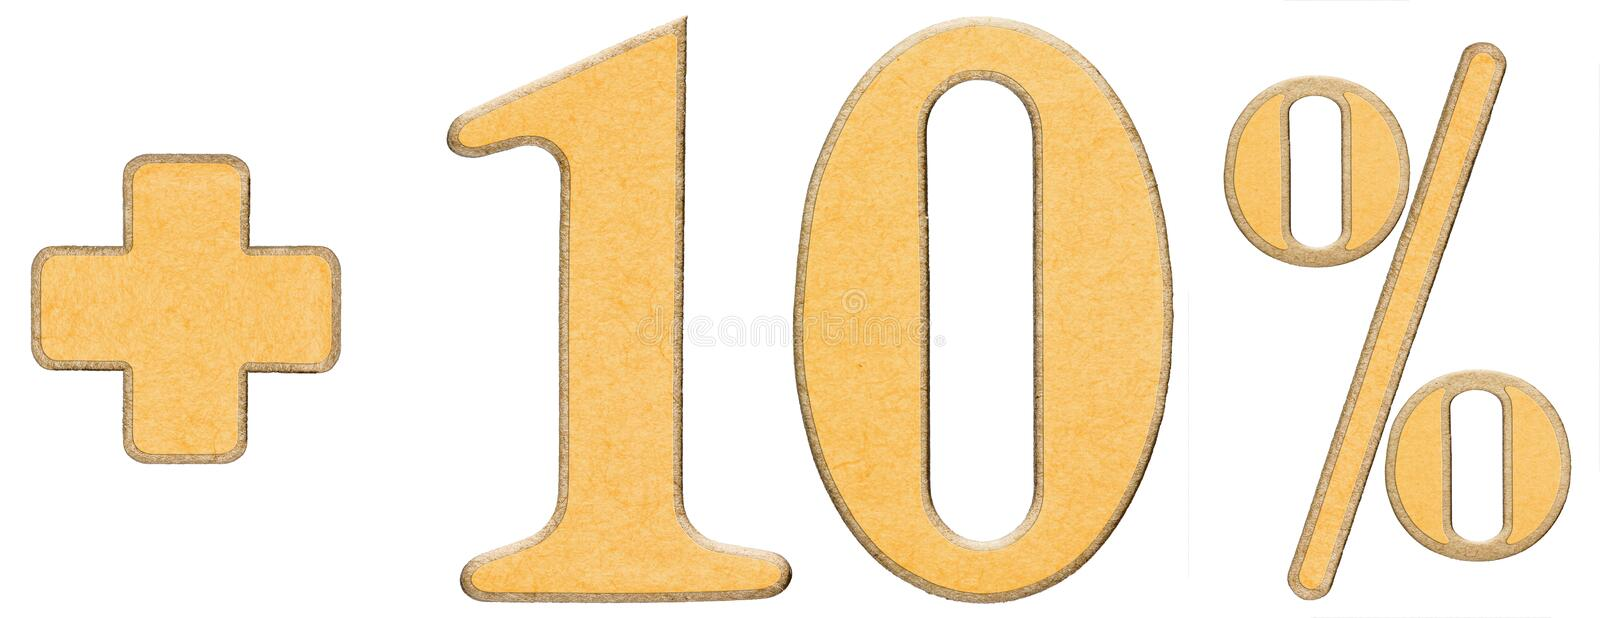 Download Percent Benefits, Plus 10 Ten Percent, Numerals Isolated On Whit Stock Photo - Image: 83713196